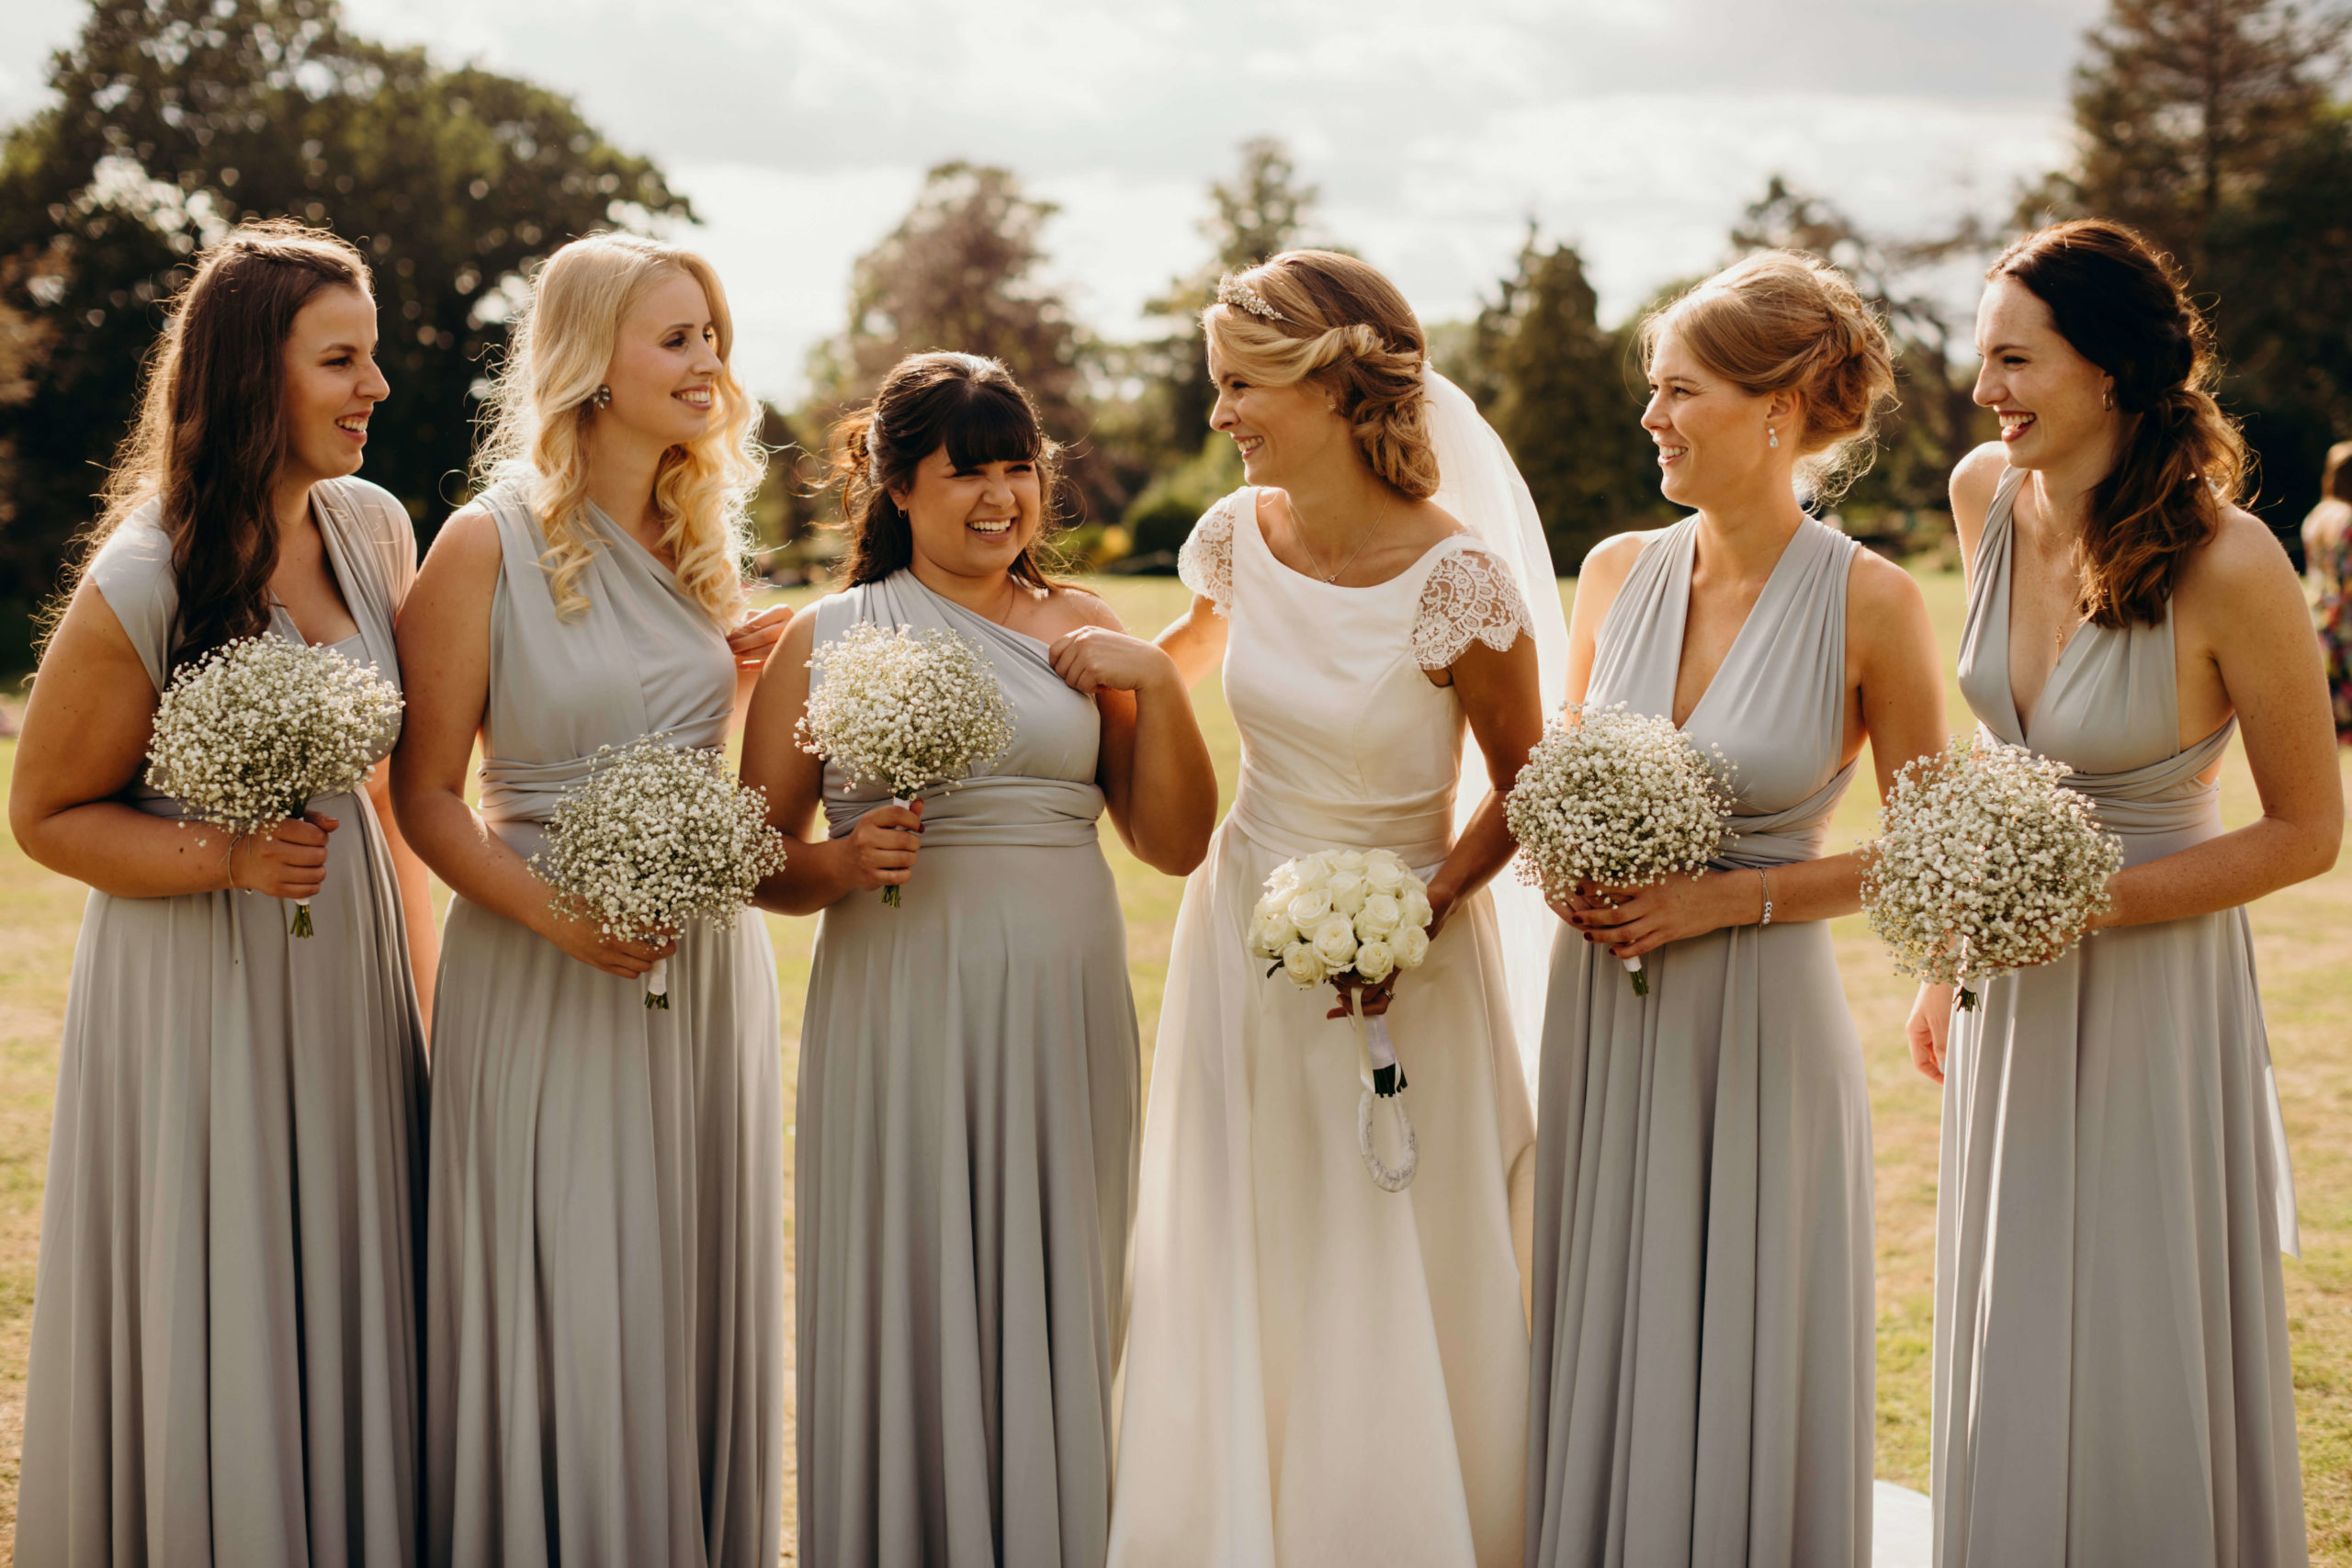 Easy To Follow Tips And Tricks When Choosing Bridesmaid Dresses